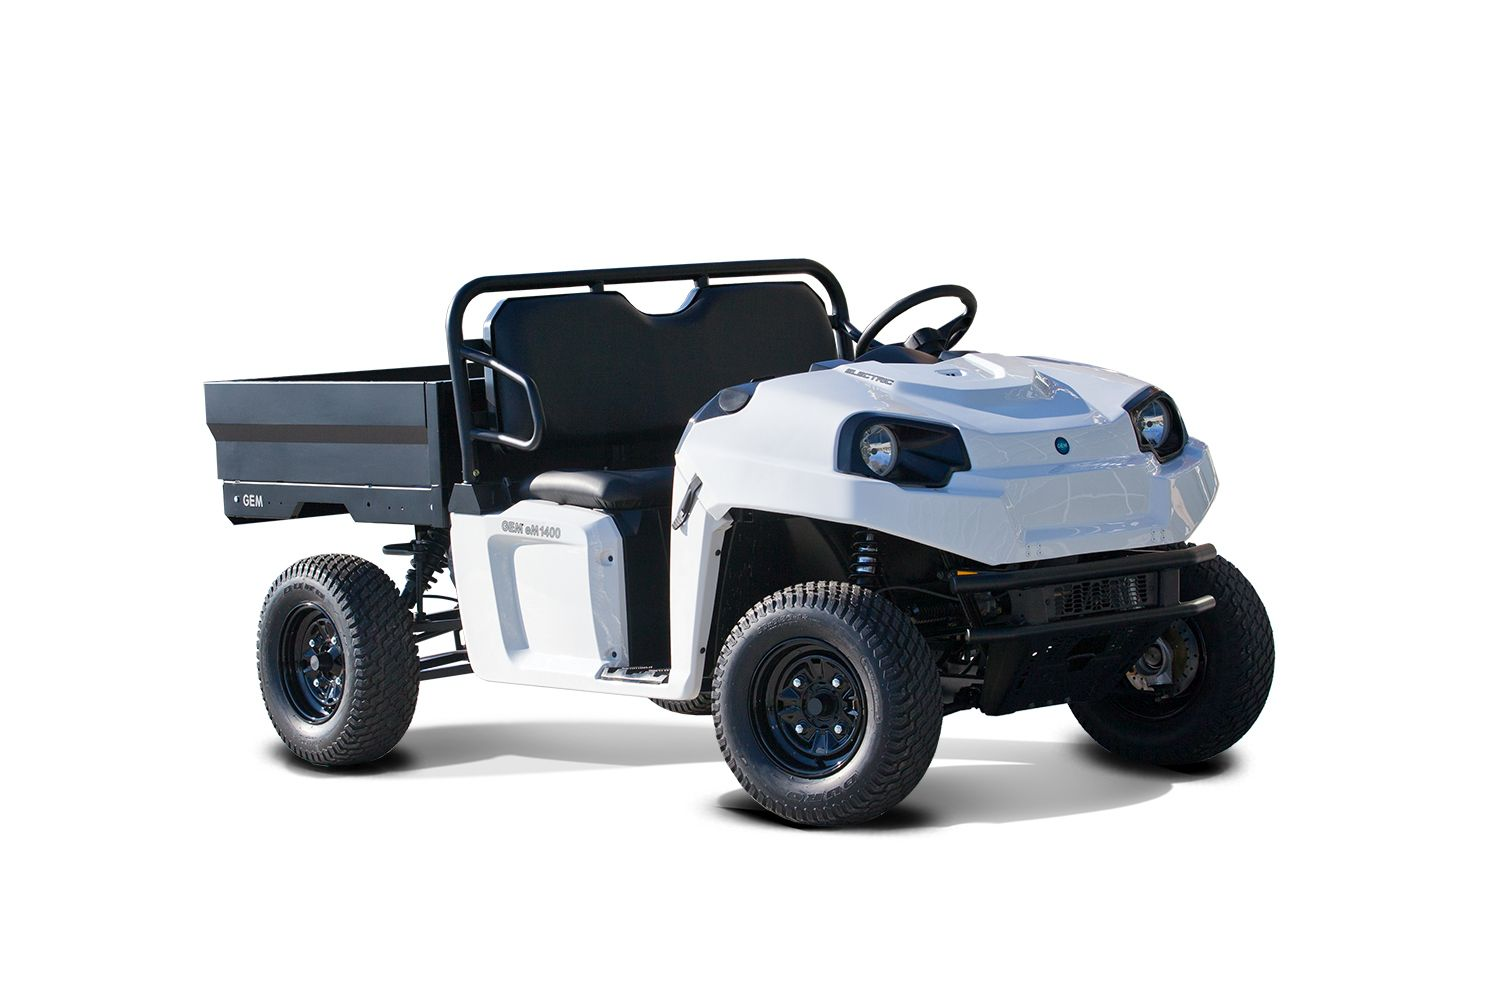 GEM eM1400 Electric Utility Vehicle